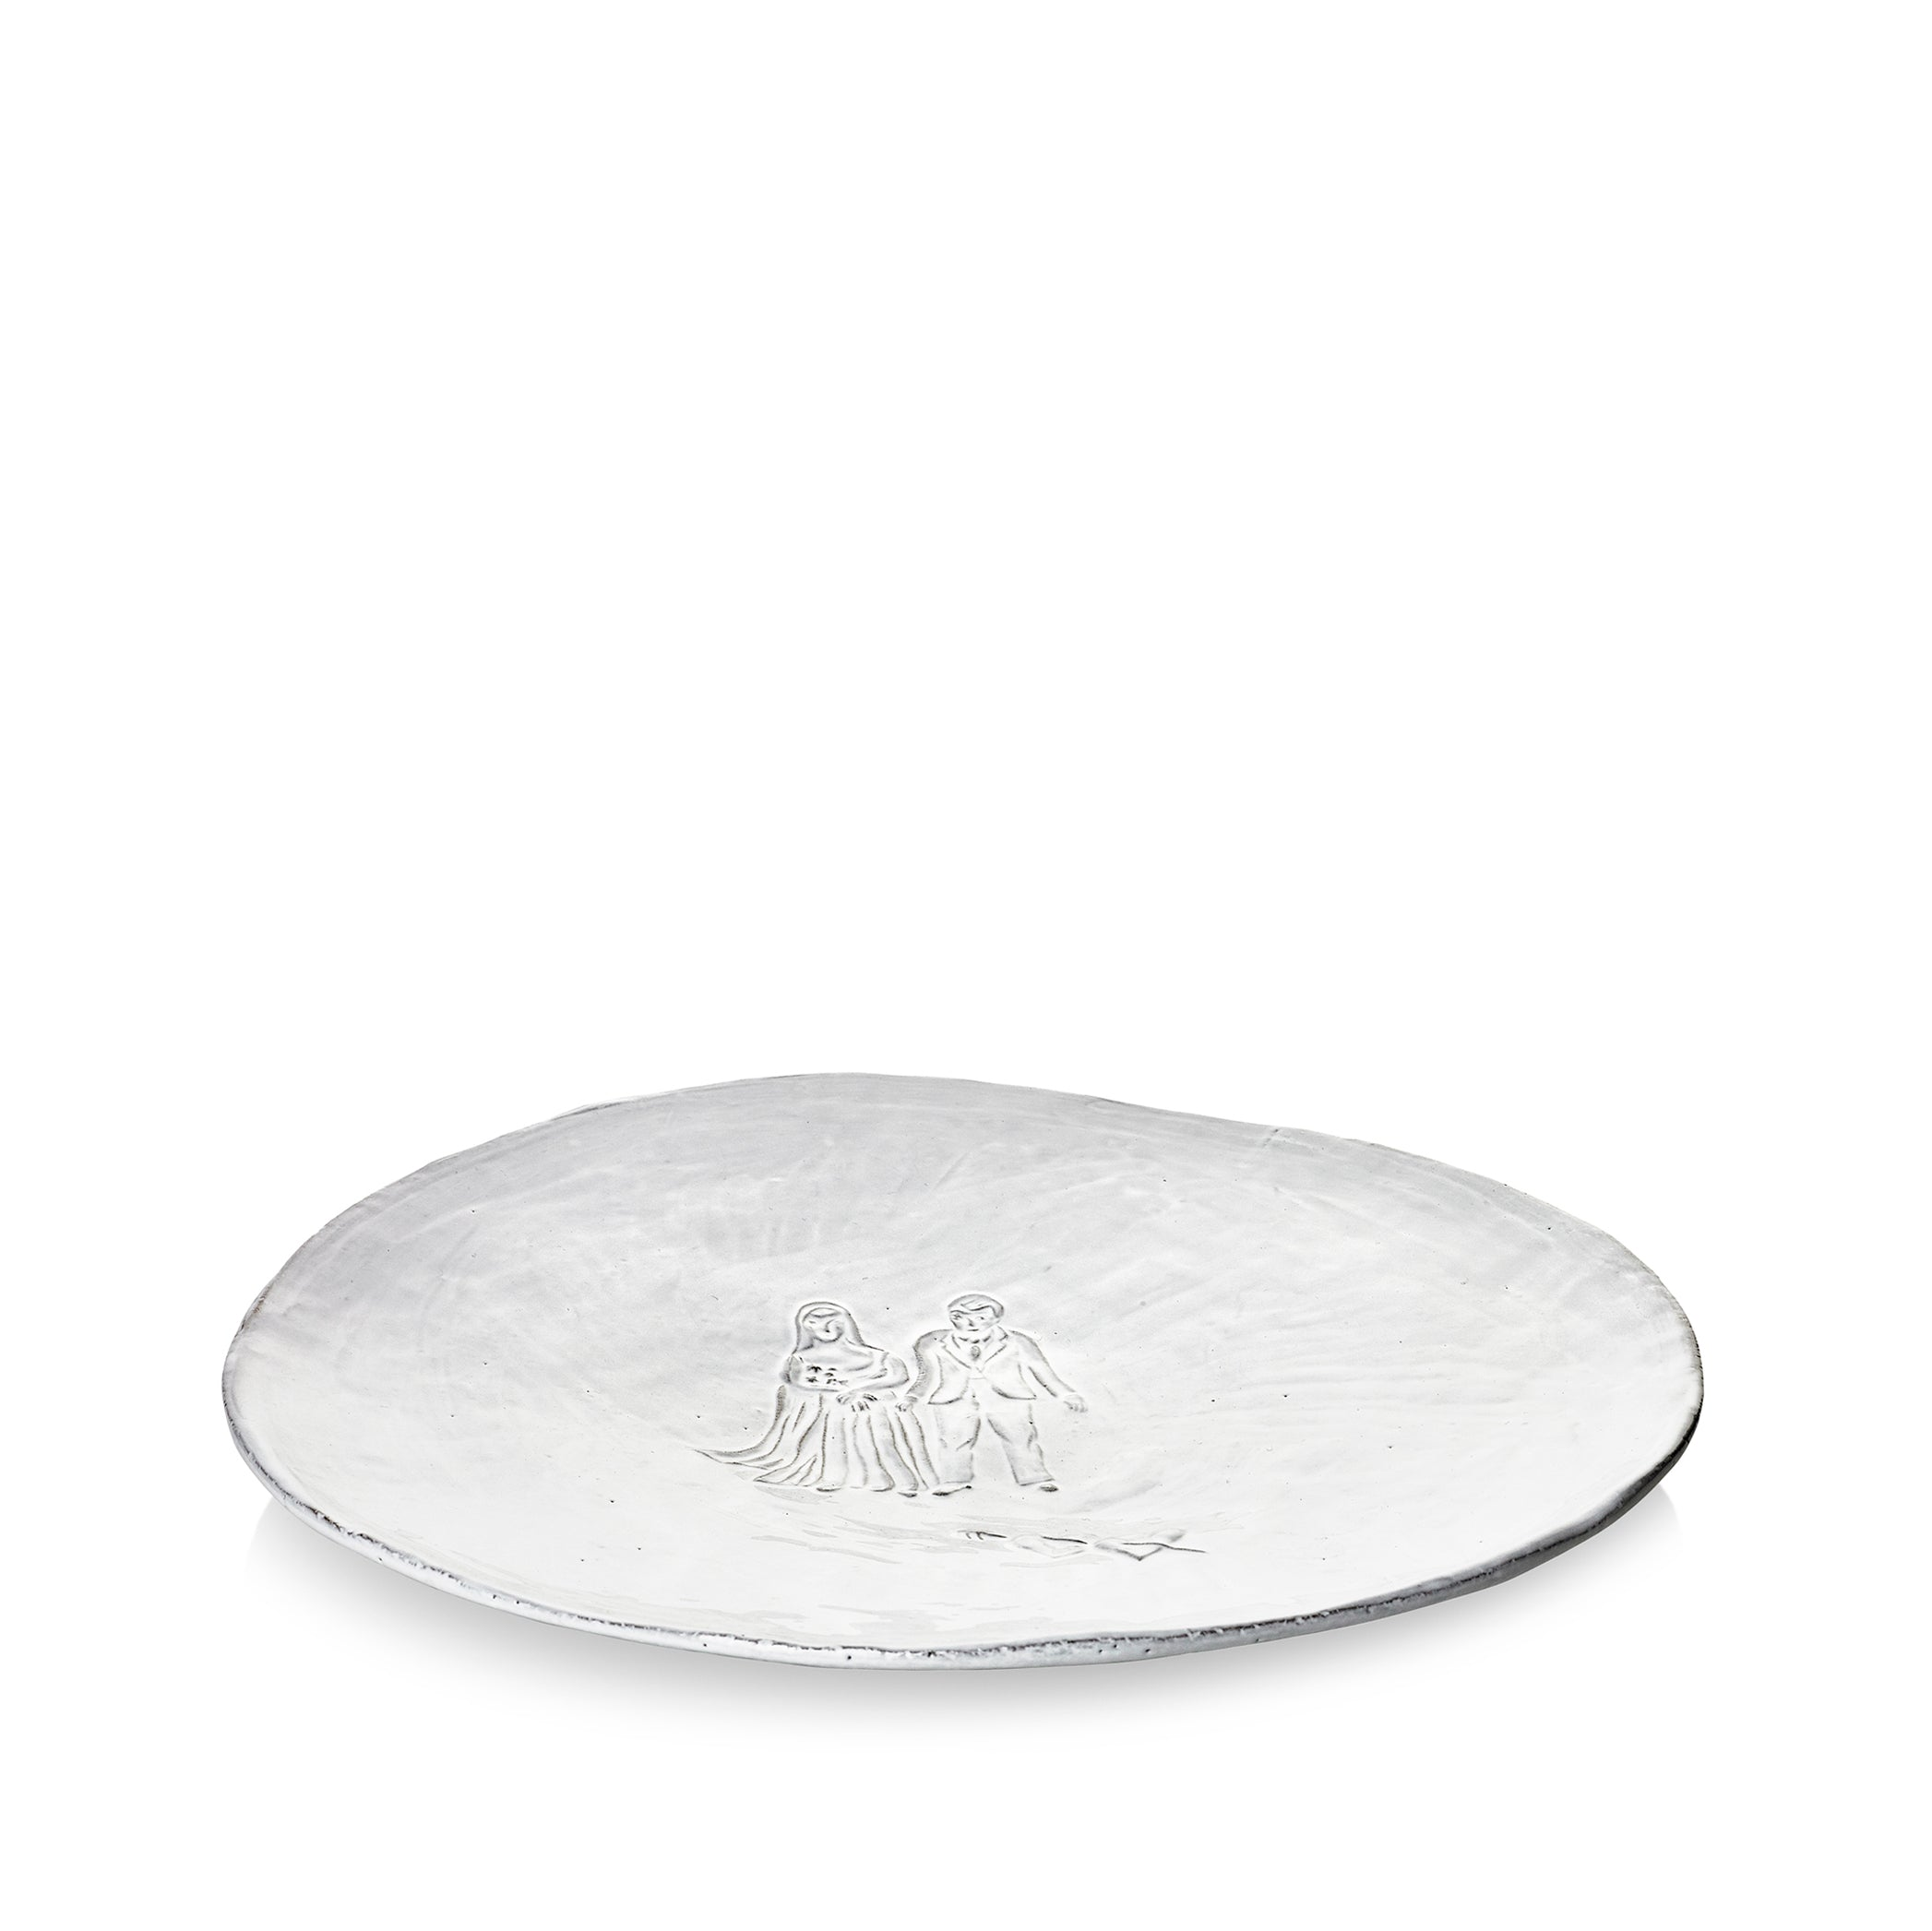 Mariés Wedding Platter by Astier de Villatte